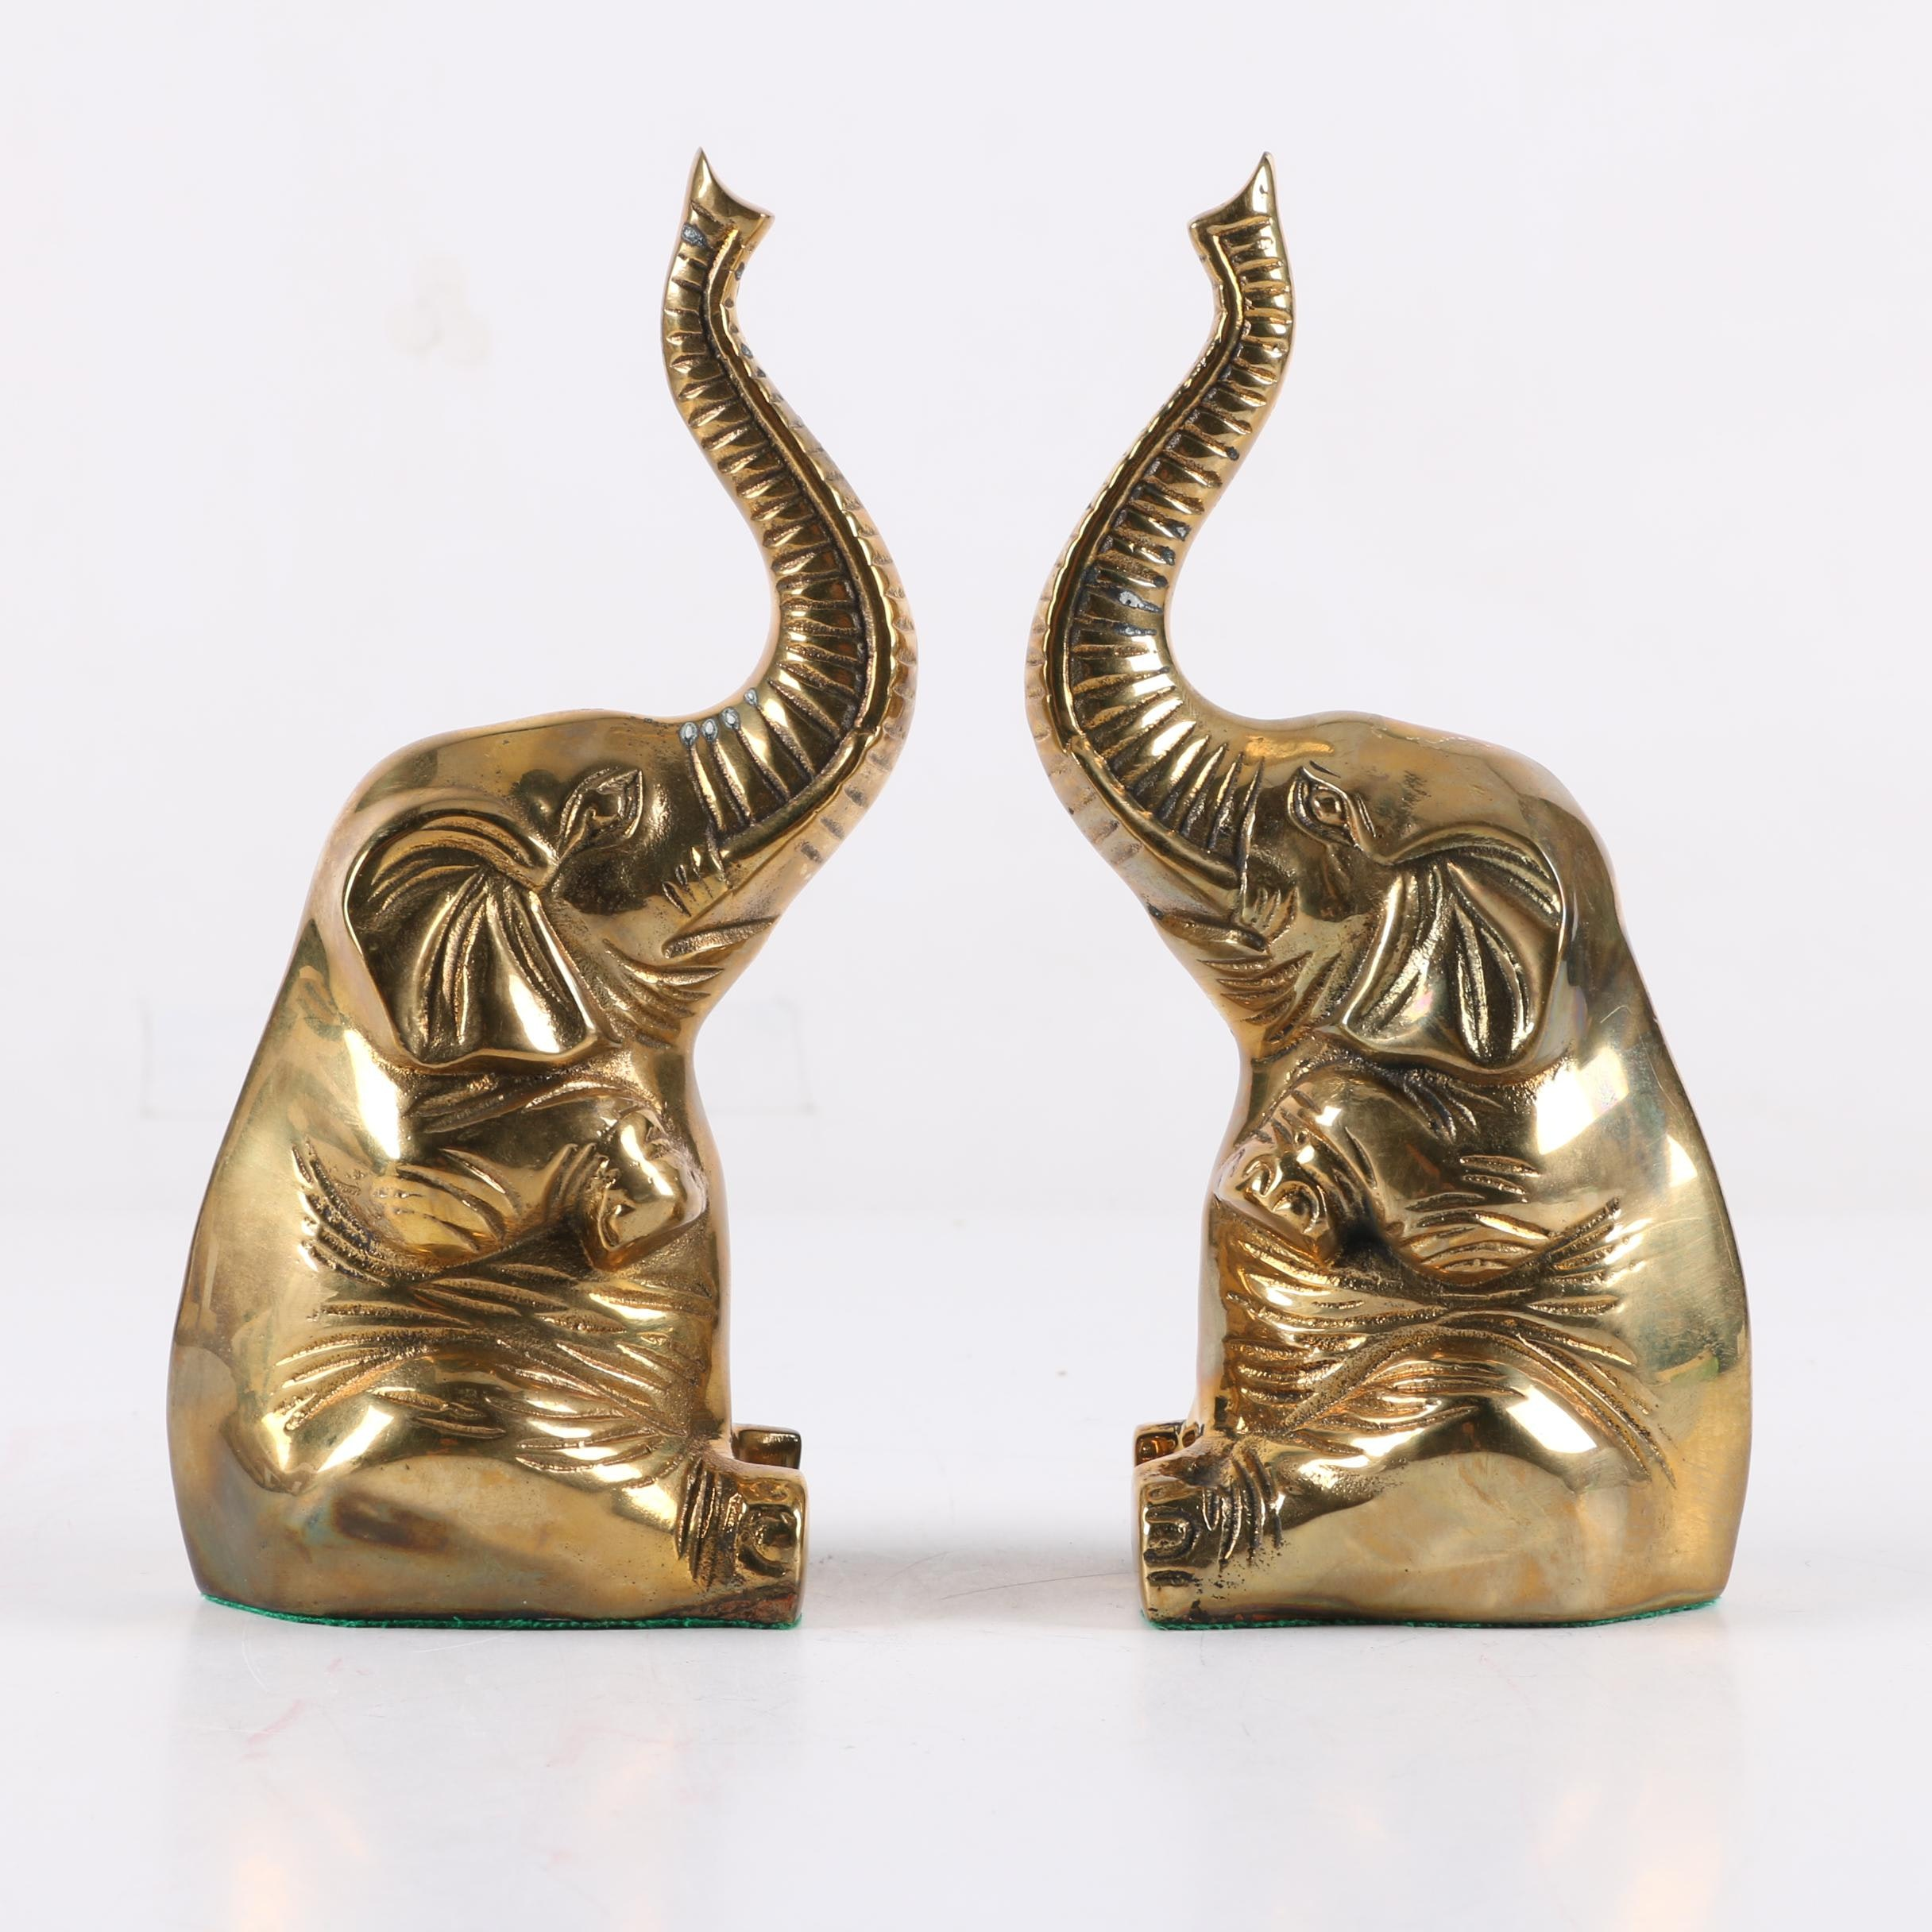 Pair of Vintage Brass Elephant Bookends